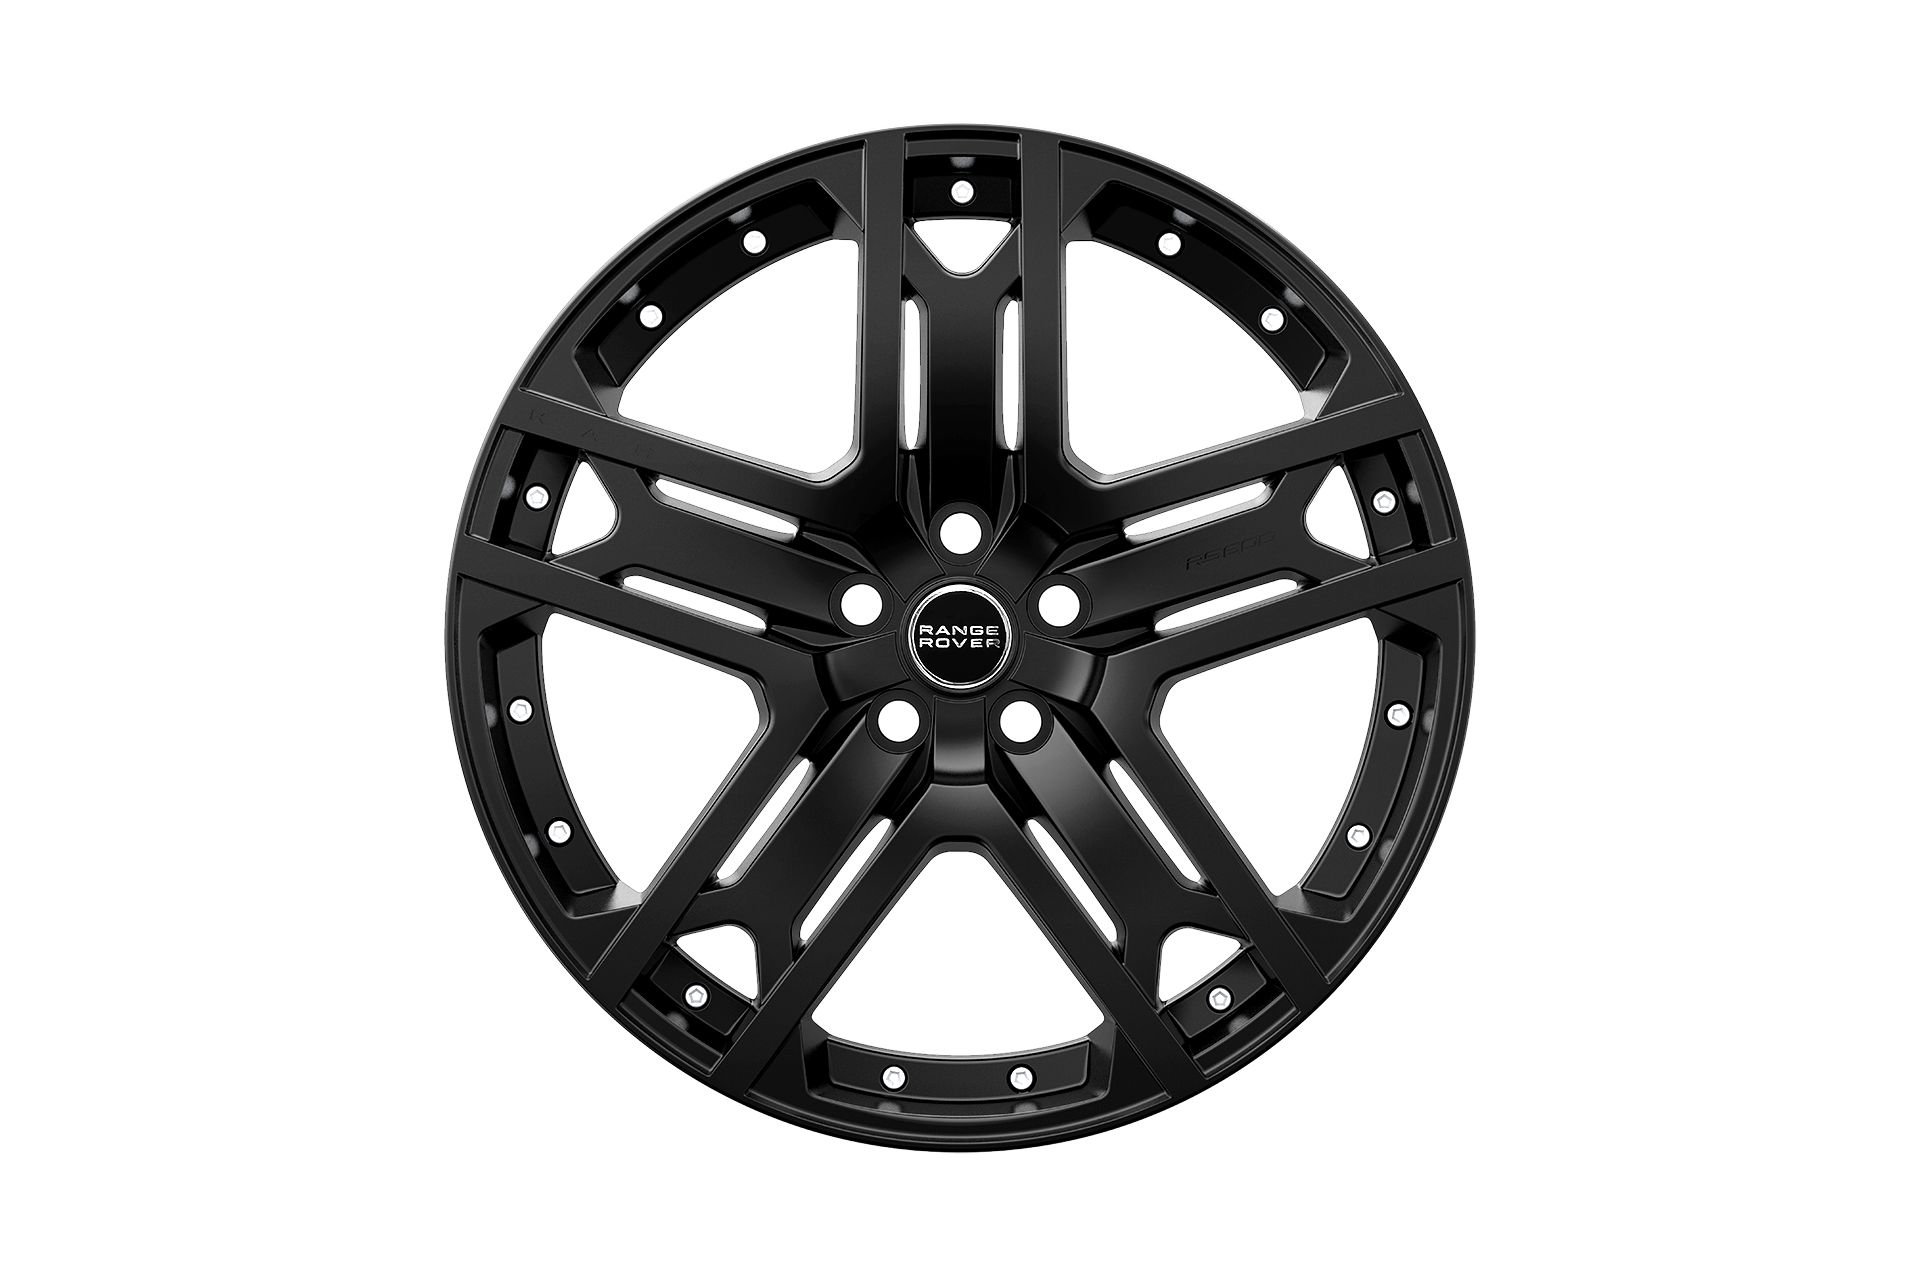 Range Rover (2002-2009) Rs600 Light Alloy Wheels by Kahn - Image 3918